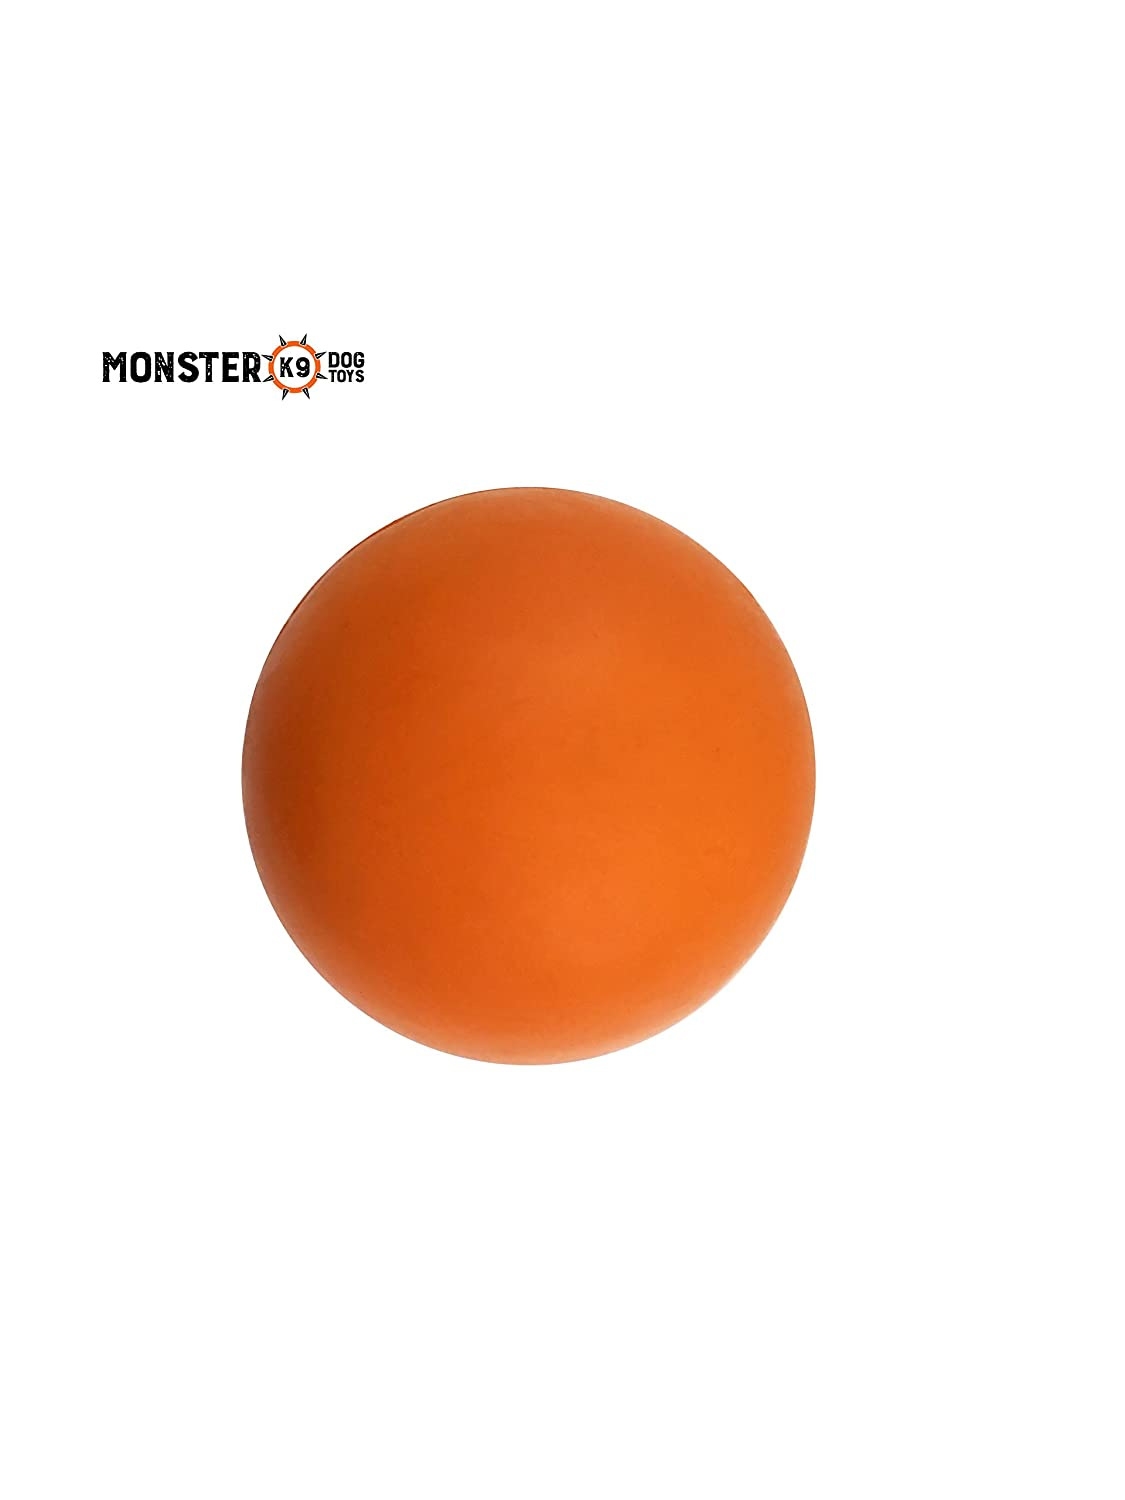 """Indestructible Dog Ball"" - Lifetime Replacement Guarantee! - Tough Strong, 100% Non-toxic Chew Toy, Natural Rubber Baseball-sized Bouncy Dog Ball for Aggressive Chewers and Large Dogs"